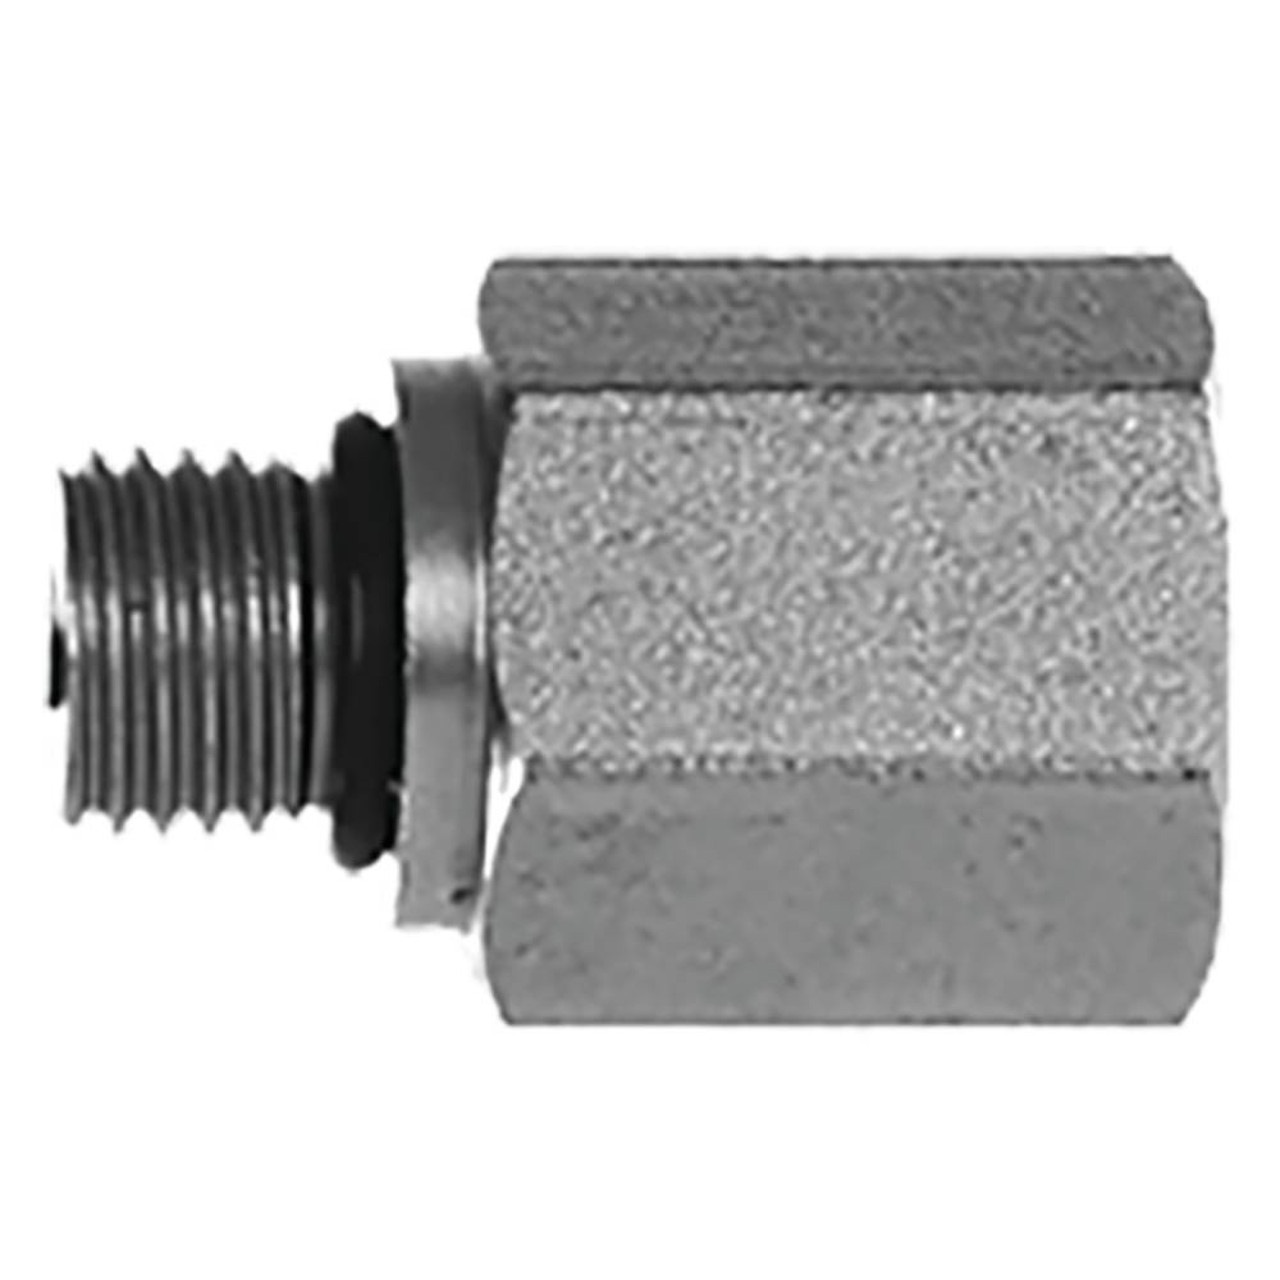 New Complete Tractor Hydraulic Adapter 3001-1394 Compatible with//Replacement for Universal Products 849-FSO-06X04